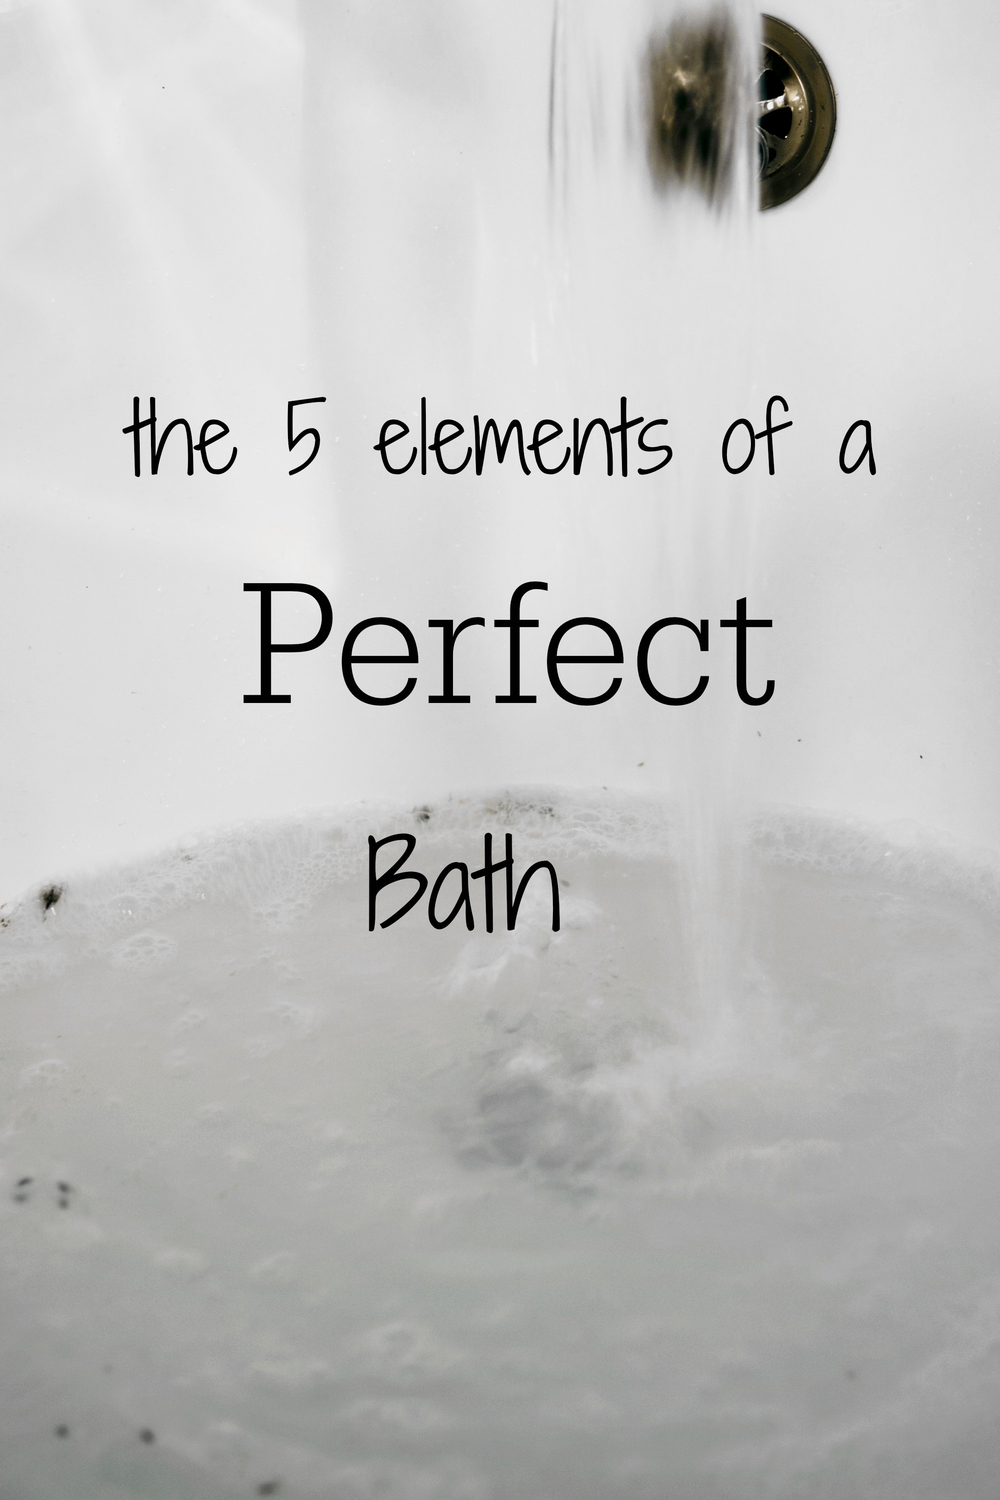 The 5 Elements of a Perfect Bath